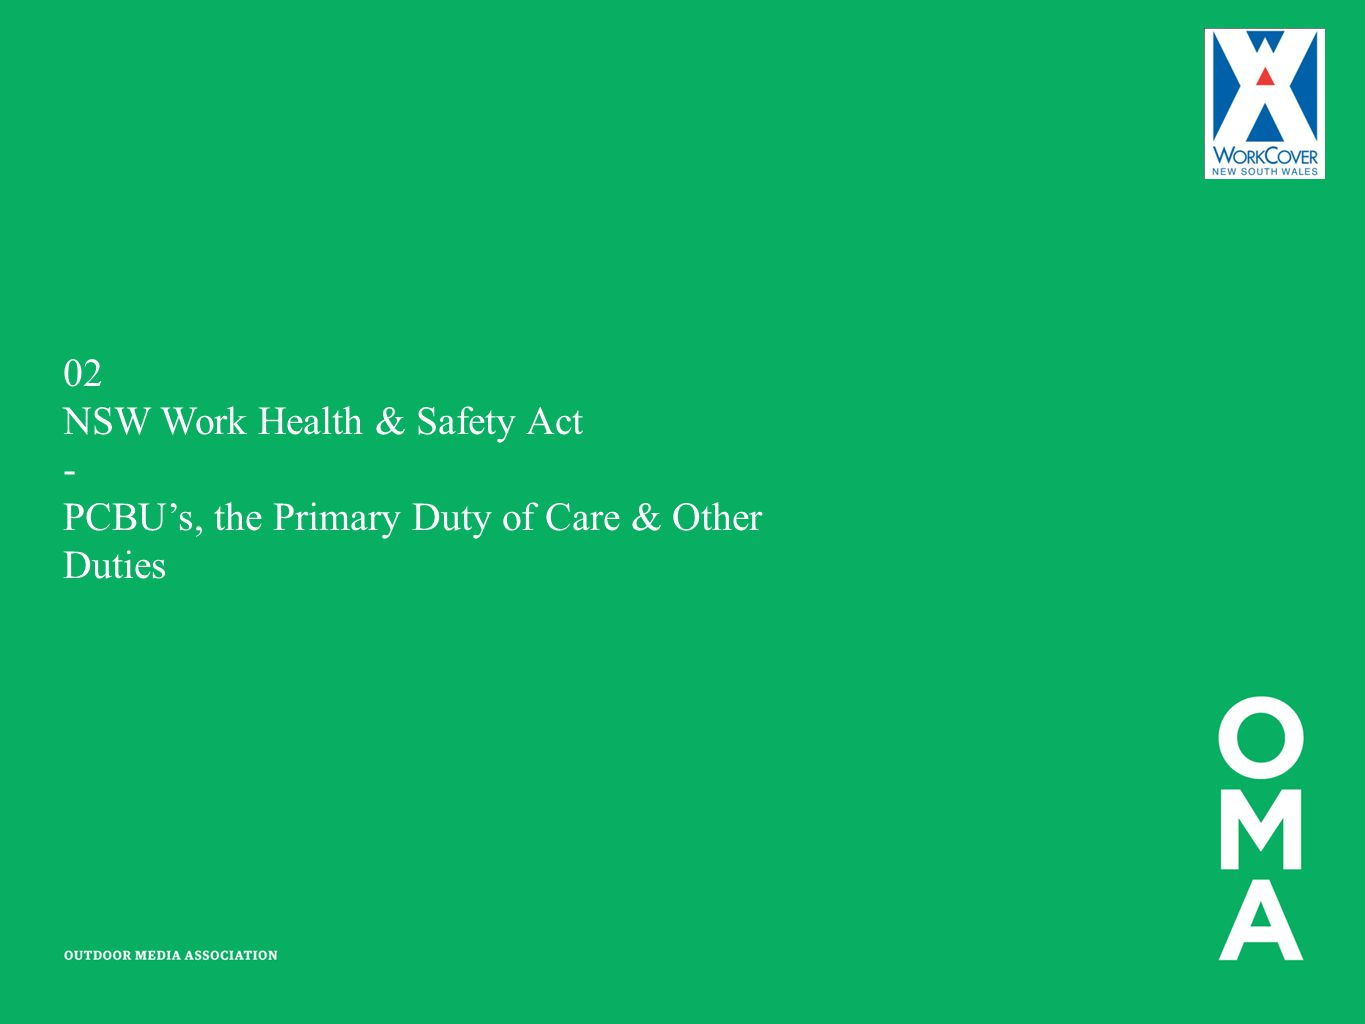 02 NSW Work Health & Safety Act - PCBU's, the Primary Duty of Care & Other Duties. Trainers Notes: PCBU.